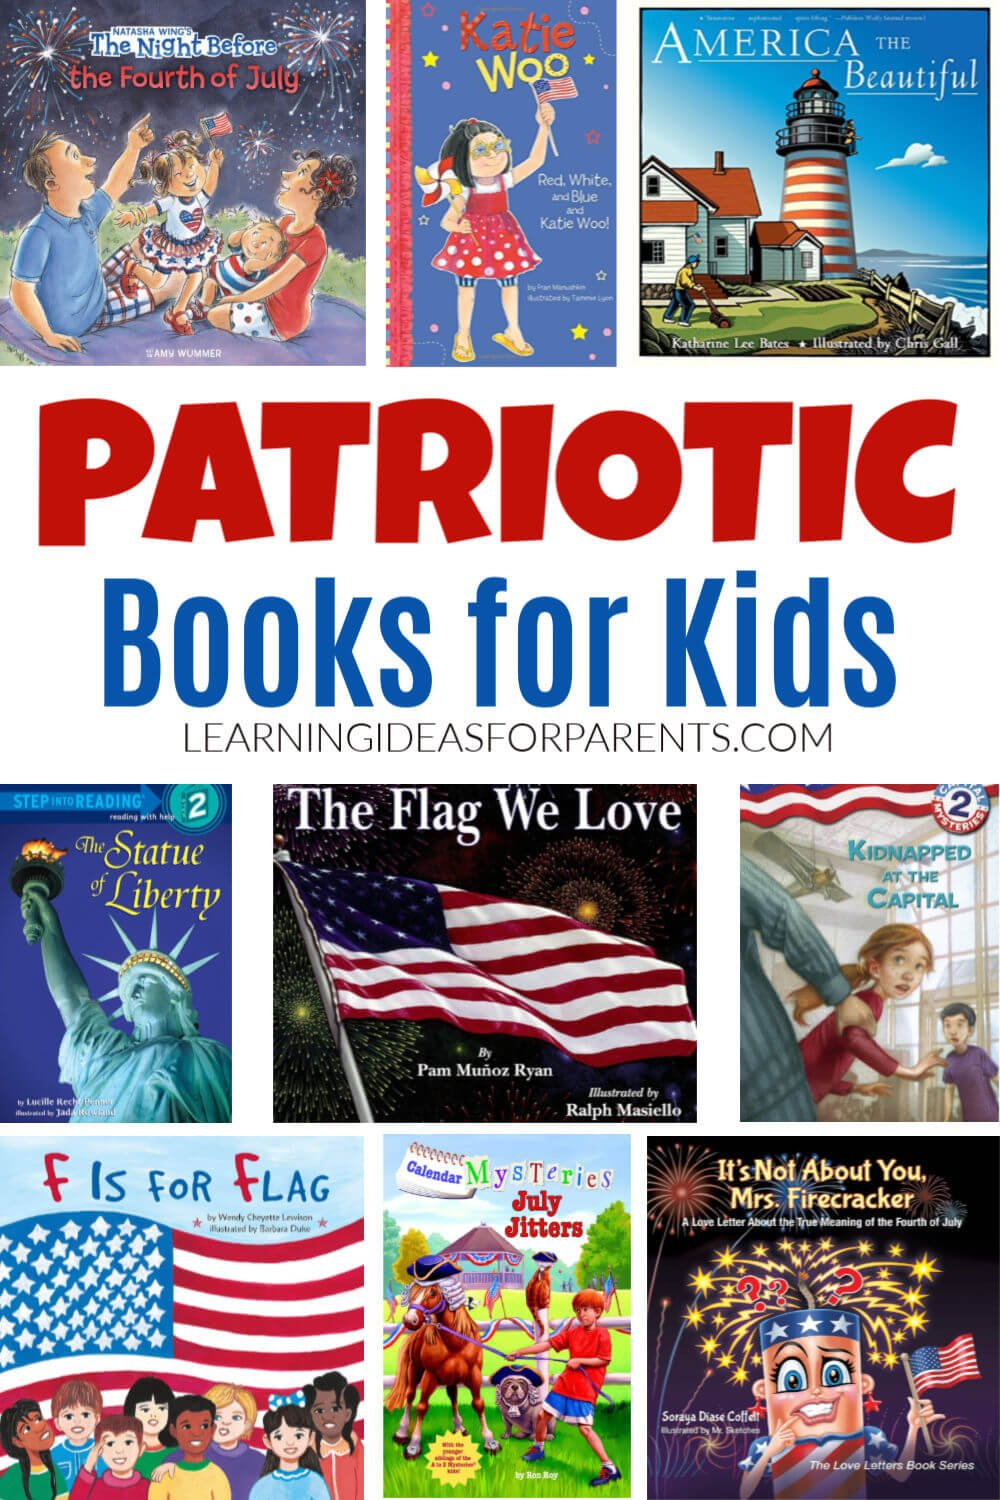 Examples of patriotic books for kids of all ages.